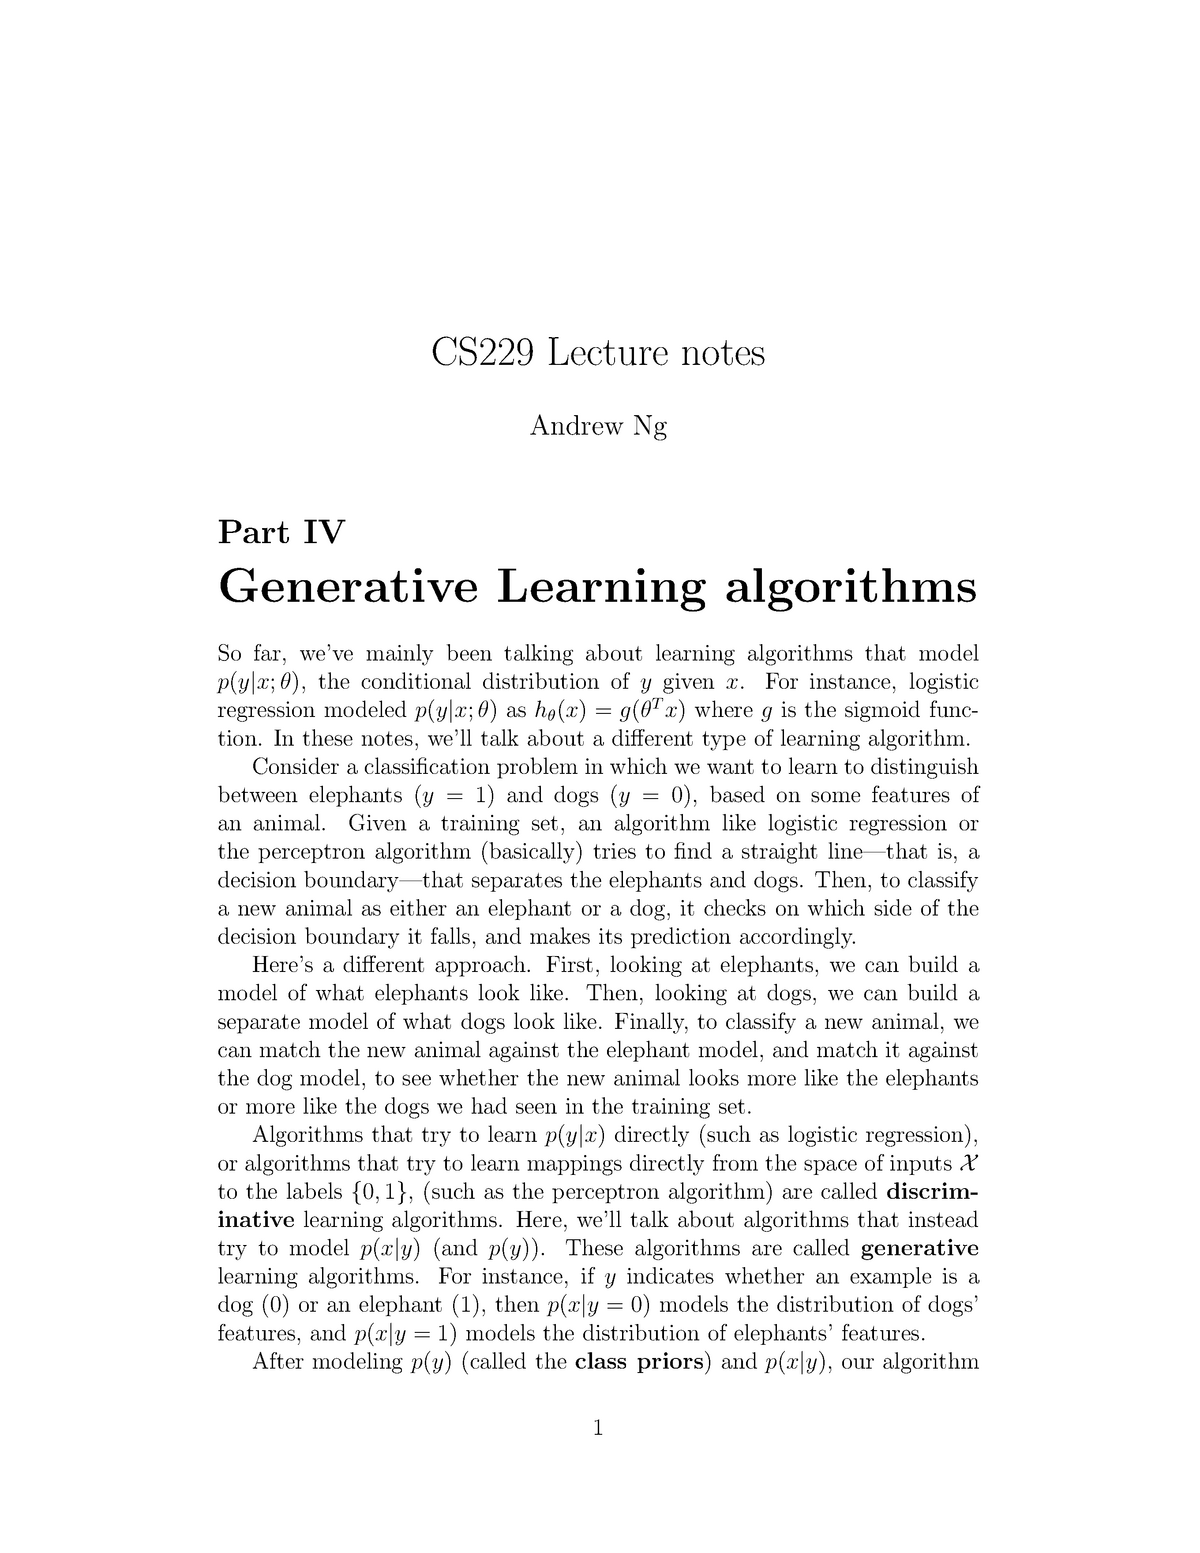 Lecture notes, lectures 1 - 5 - CS 229: Machine Learning